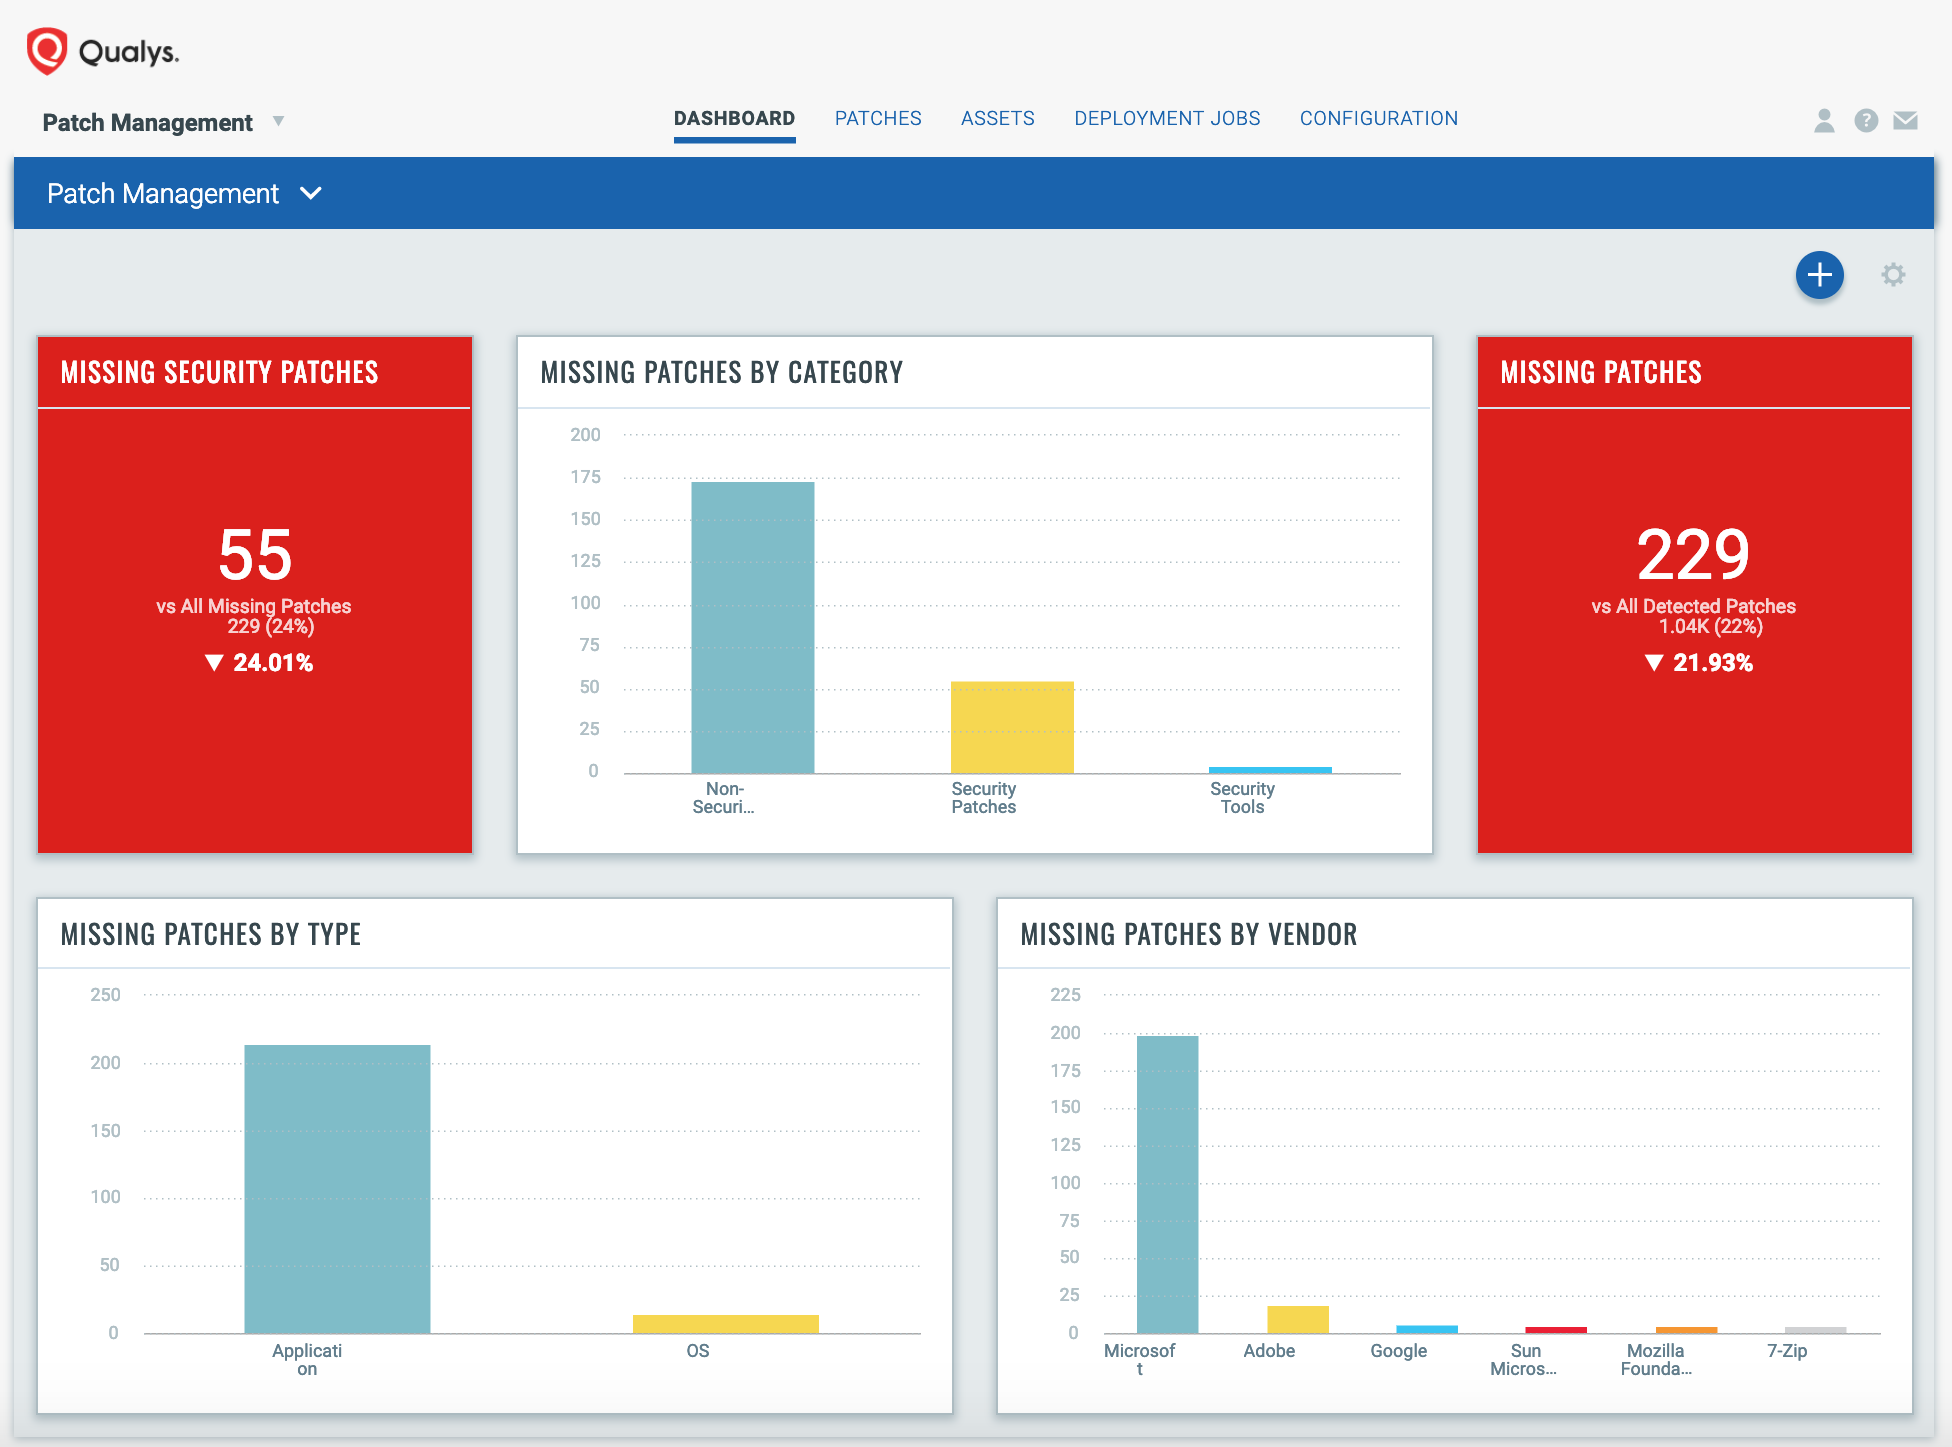 Qualys Introduces Patch Management App to Help IT and Security Teams